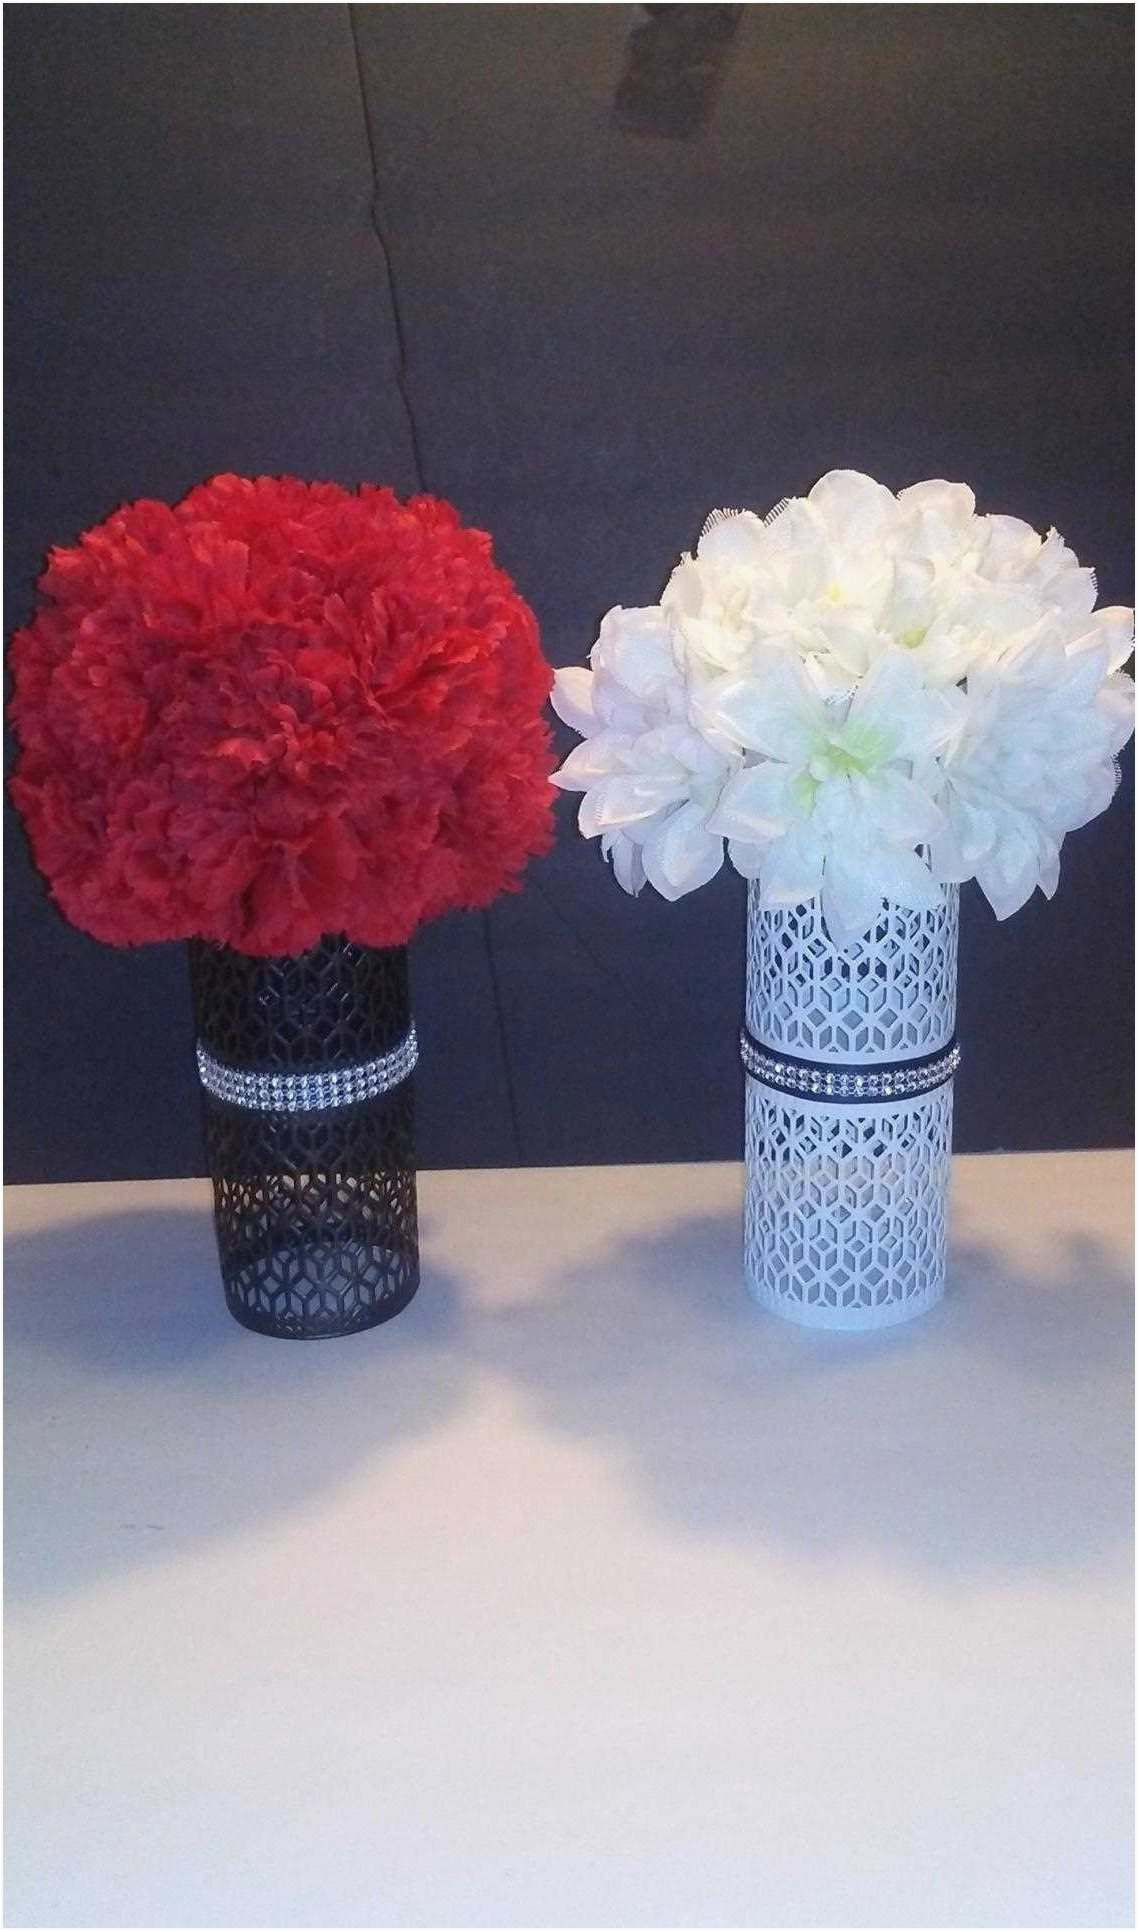 20 glass vase of wedding flower decoration ideas 6625 1h vases mercury glass cylinder intended for wedding flower decoration photo wedding flower arrangements awesome dollar tree wedding decorations top design